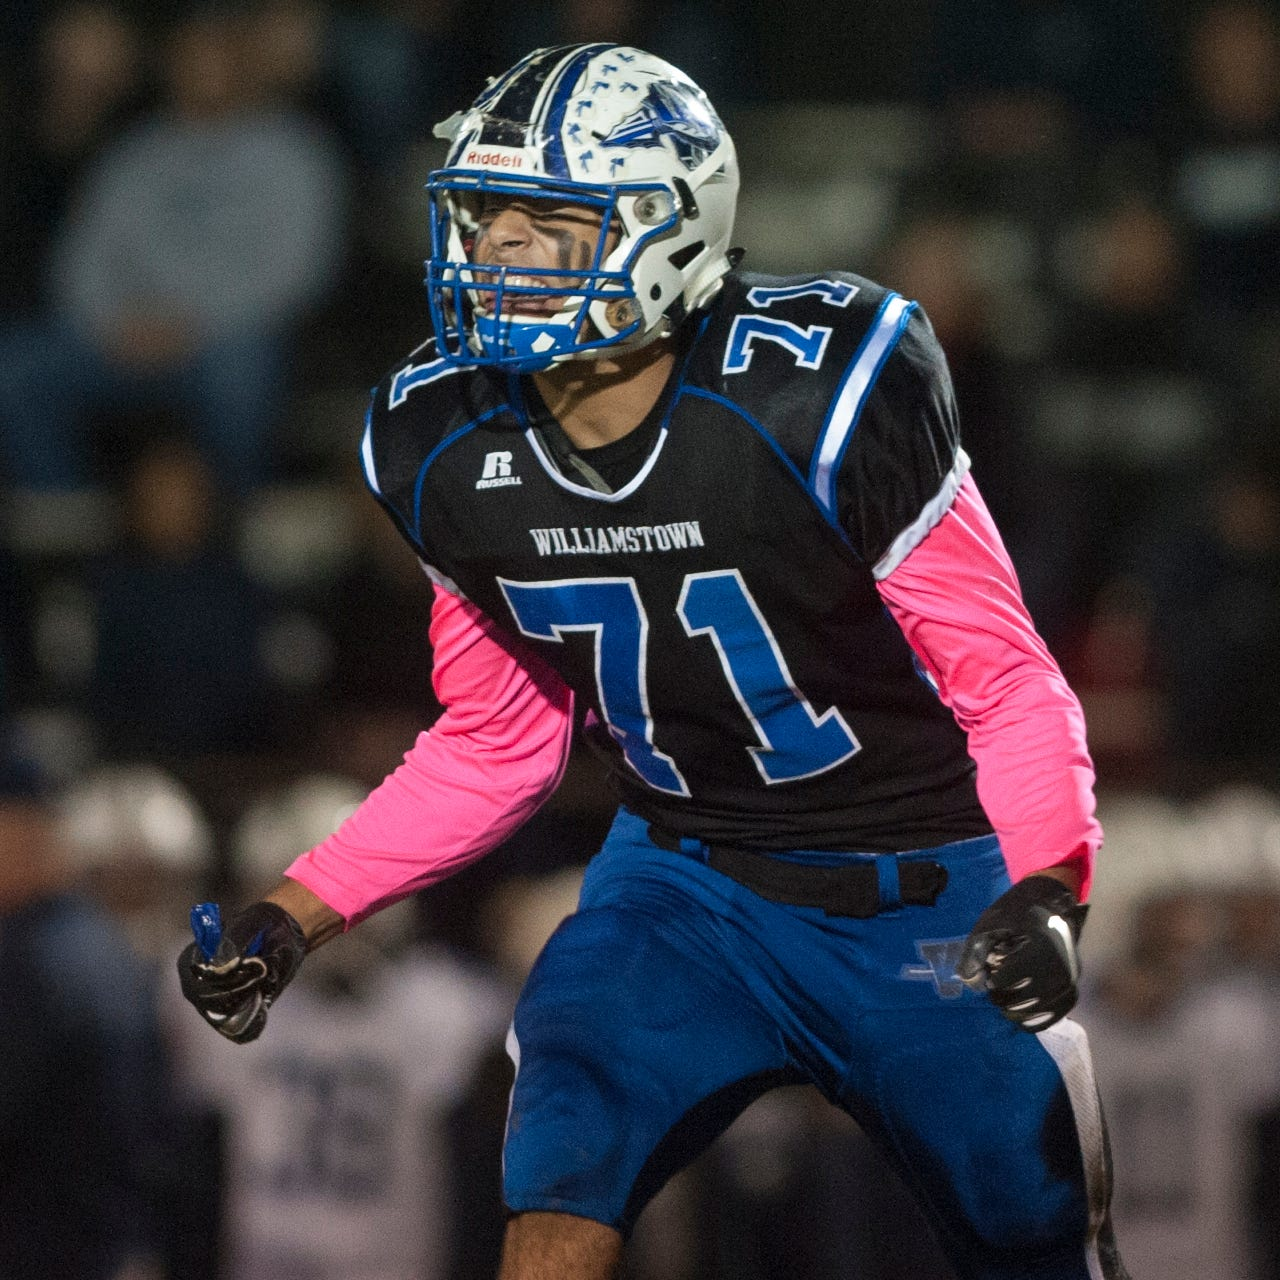 South Jersey football: Williamstown standout Aaron Lewis commits to West Virginia